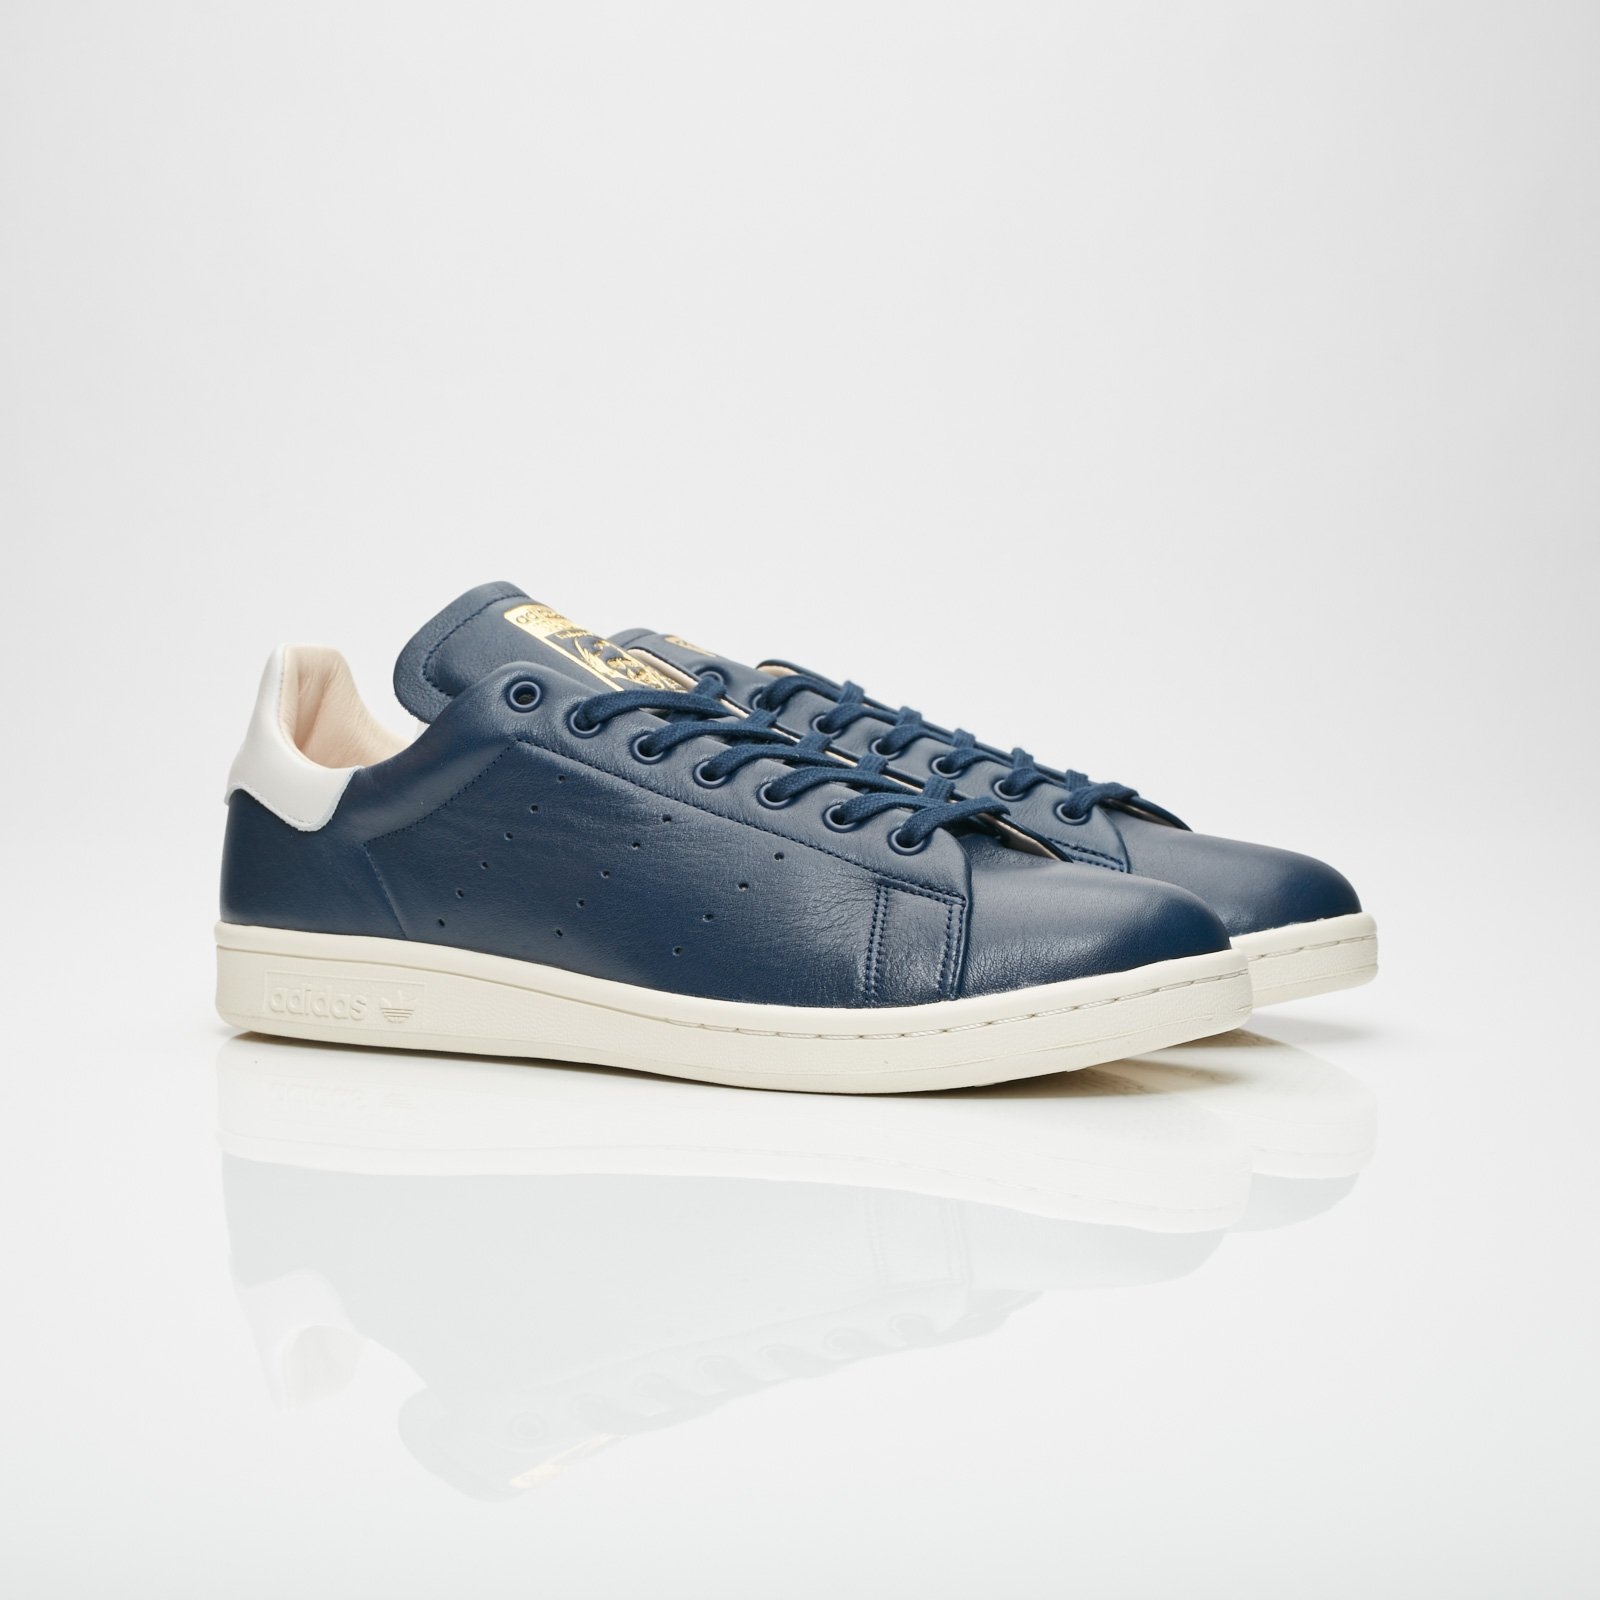 b7f0966200a adidas Stan Smith Recon - Cq3034 - Sneakersnstuff